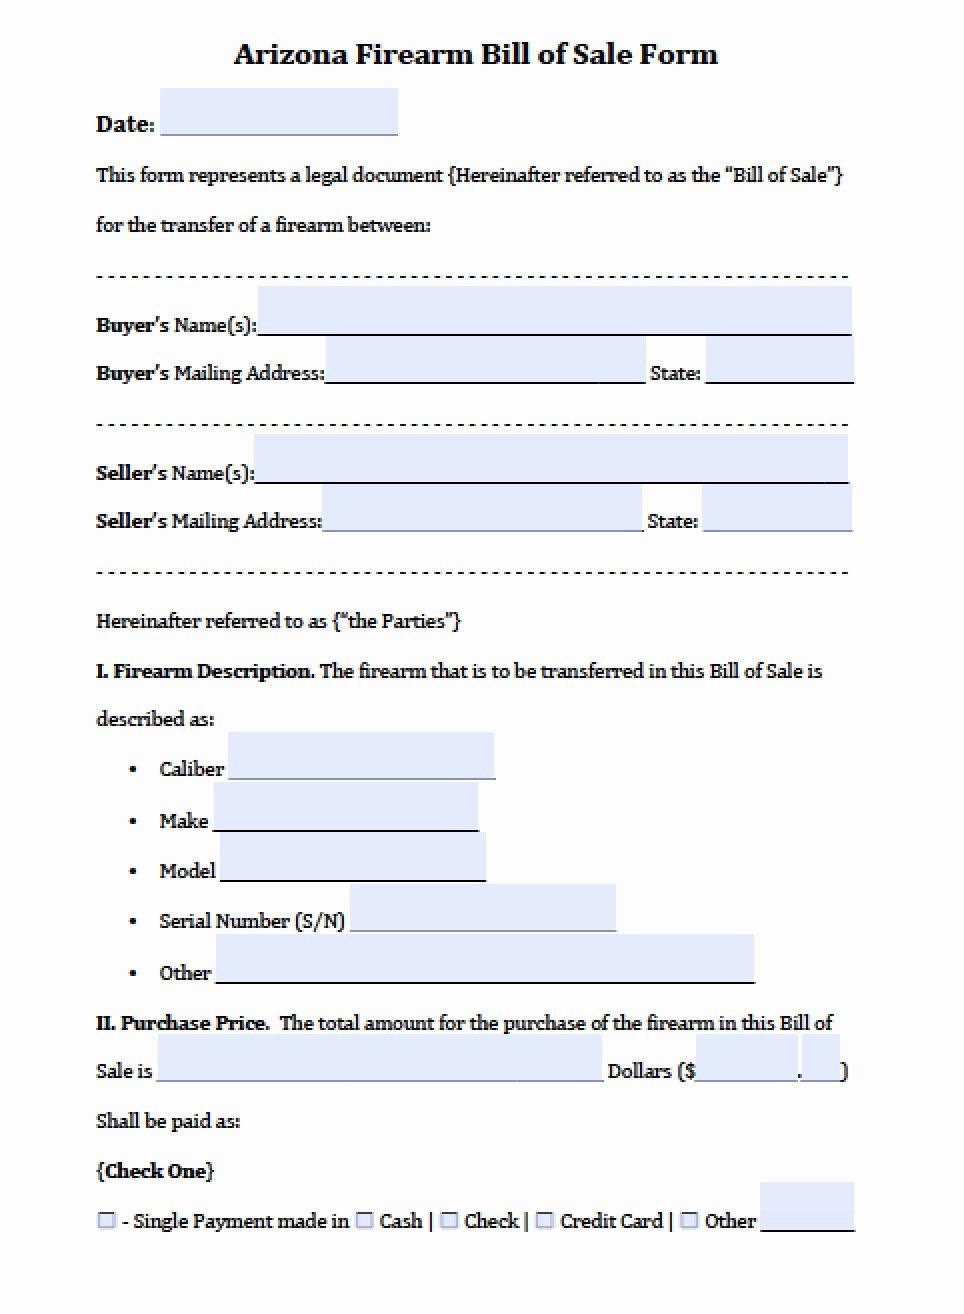 Free Arizona Firearm Bill Of Sale form Pdf